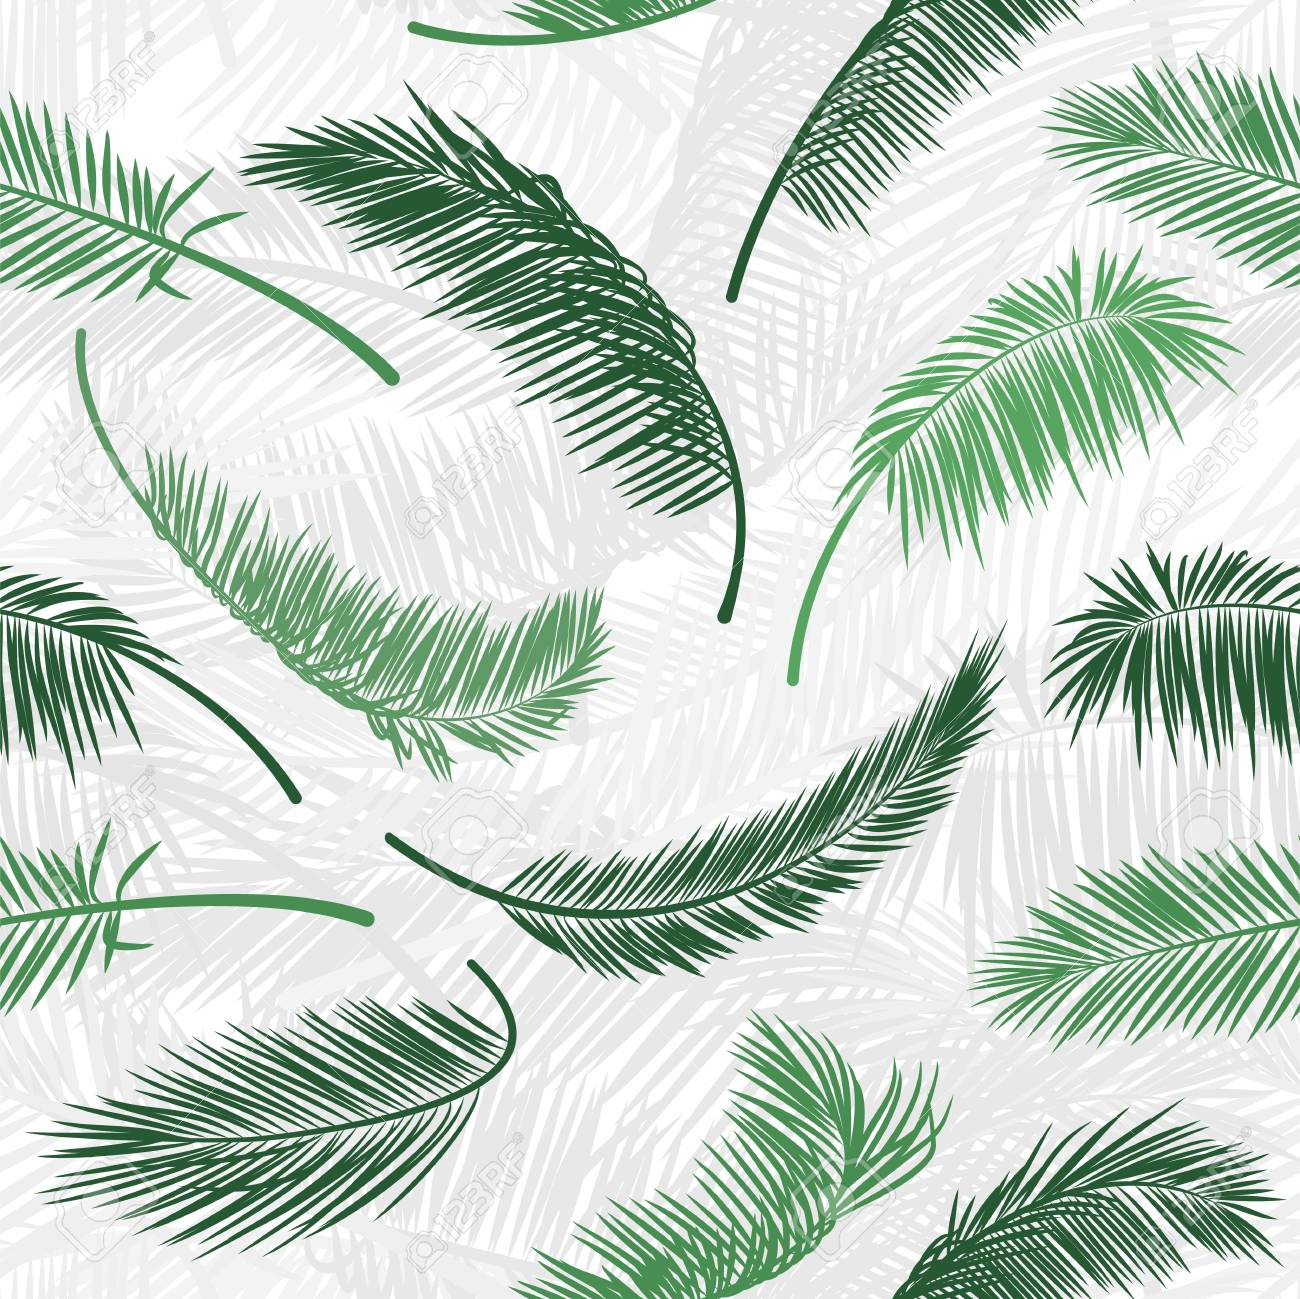 Tropical Green Palm Tree Leaves In Seamless Pattern Vector Pattern Royalty Free Cliparts Vectors And Stock Illustration Image 112046578